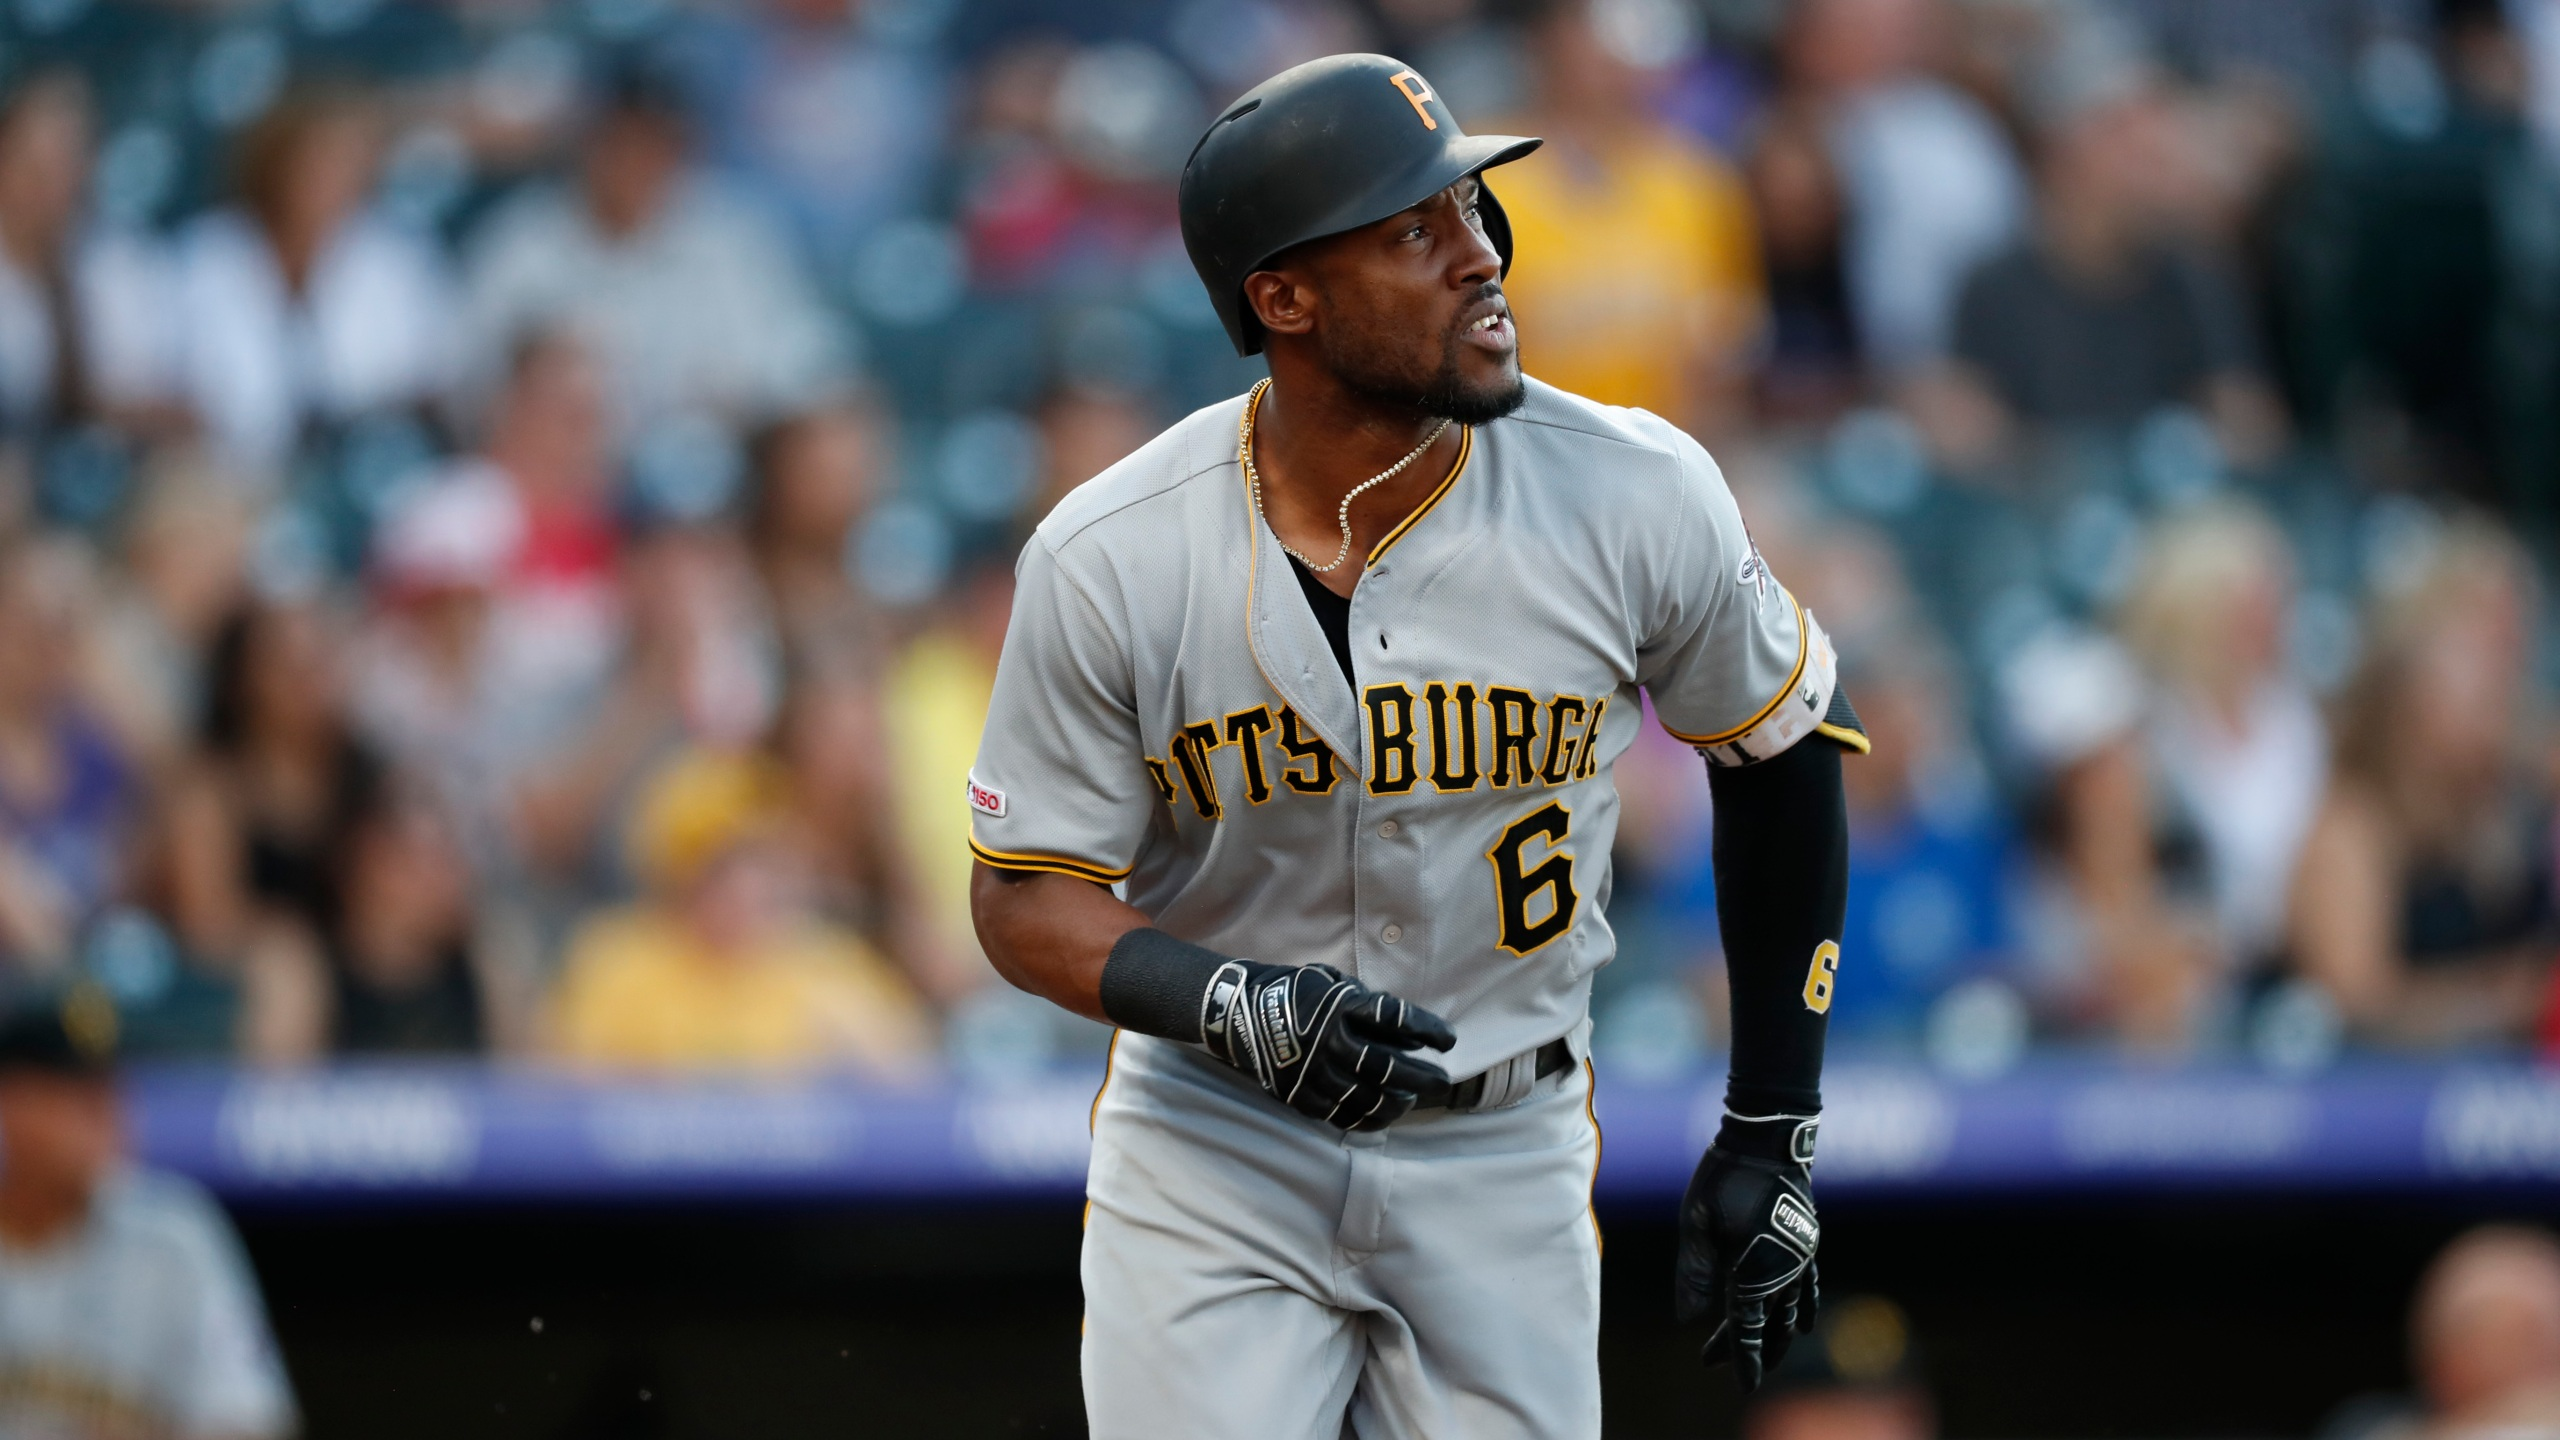 Pittsburgh Pirates center fielder Starling Marte (6), r m